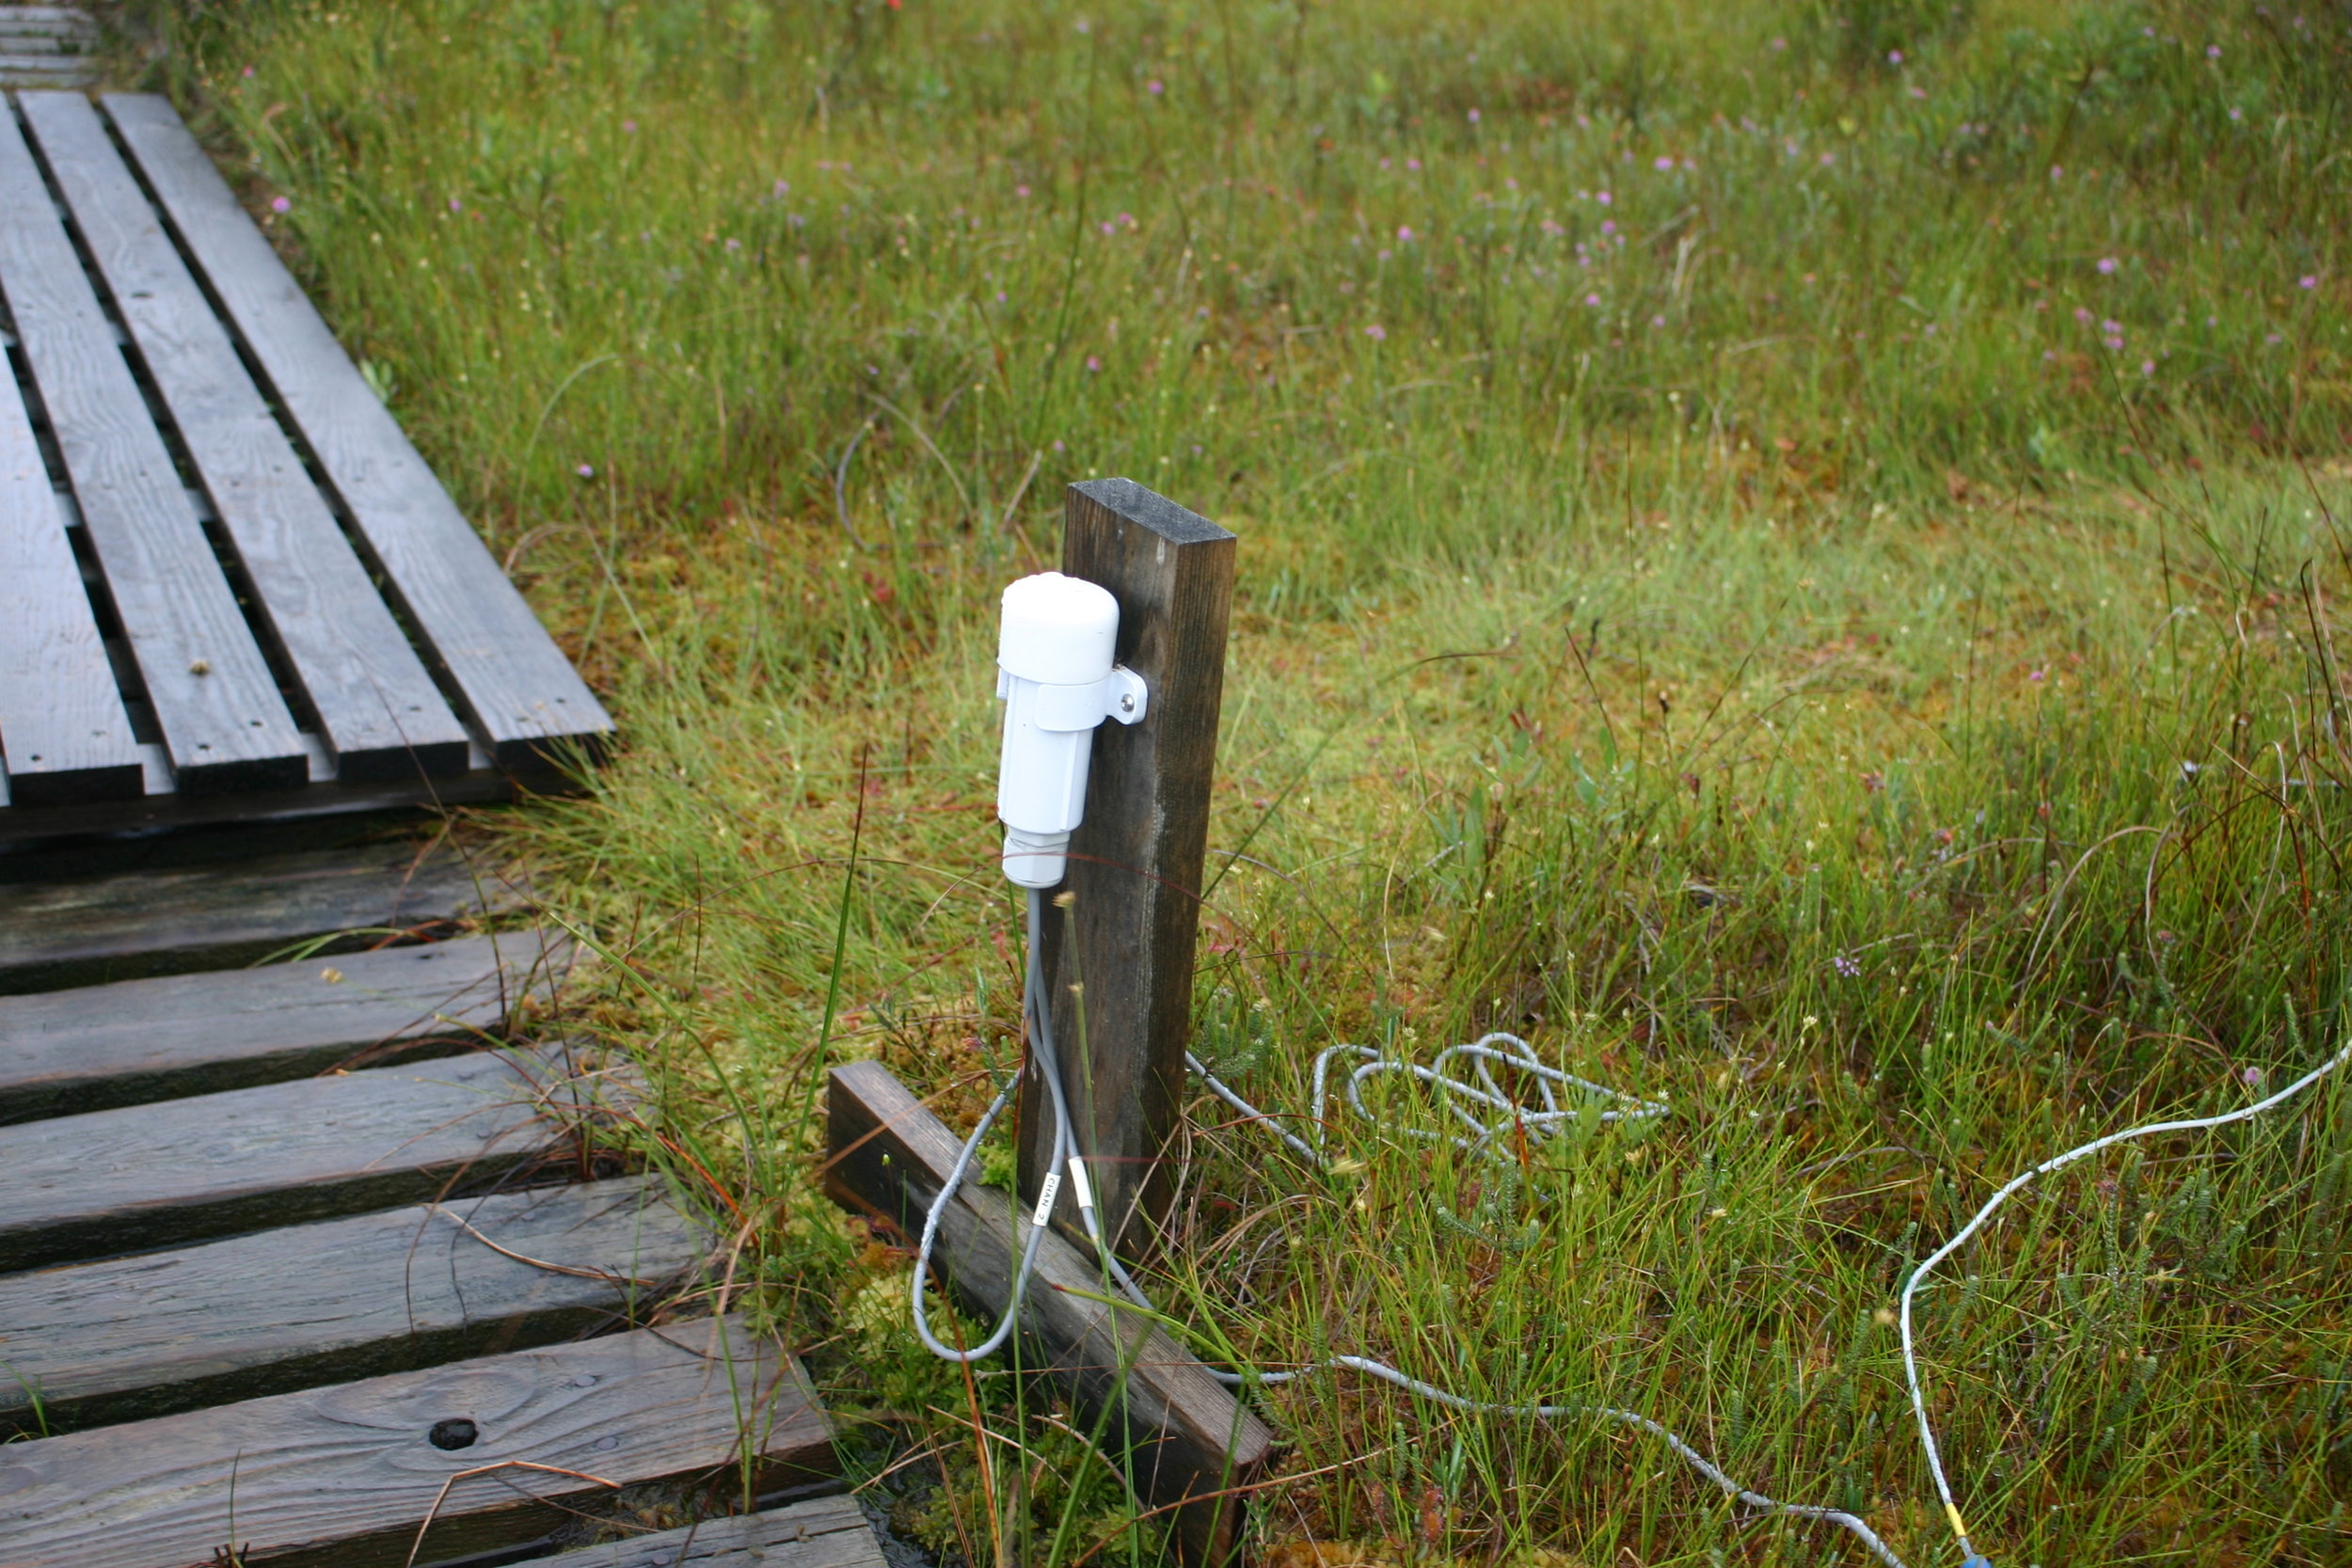 one of the new plot data-loggers, funded via an ect small grant